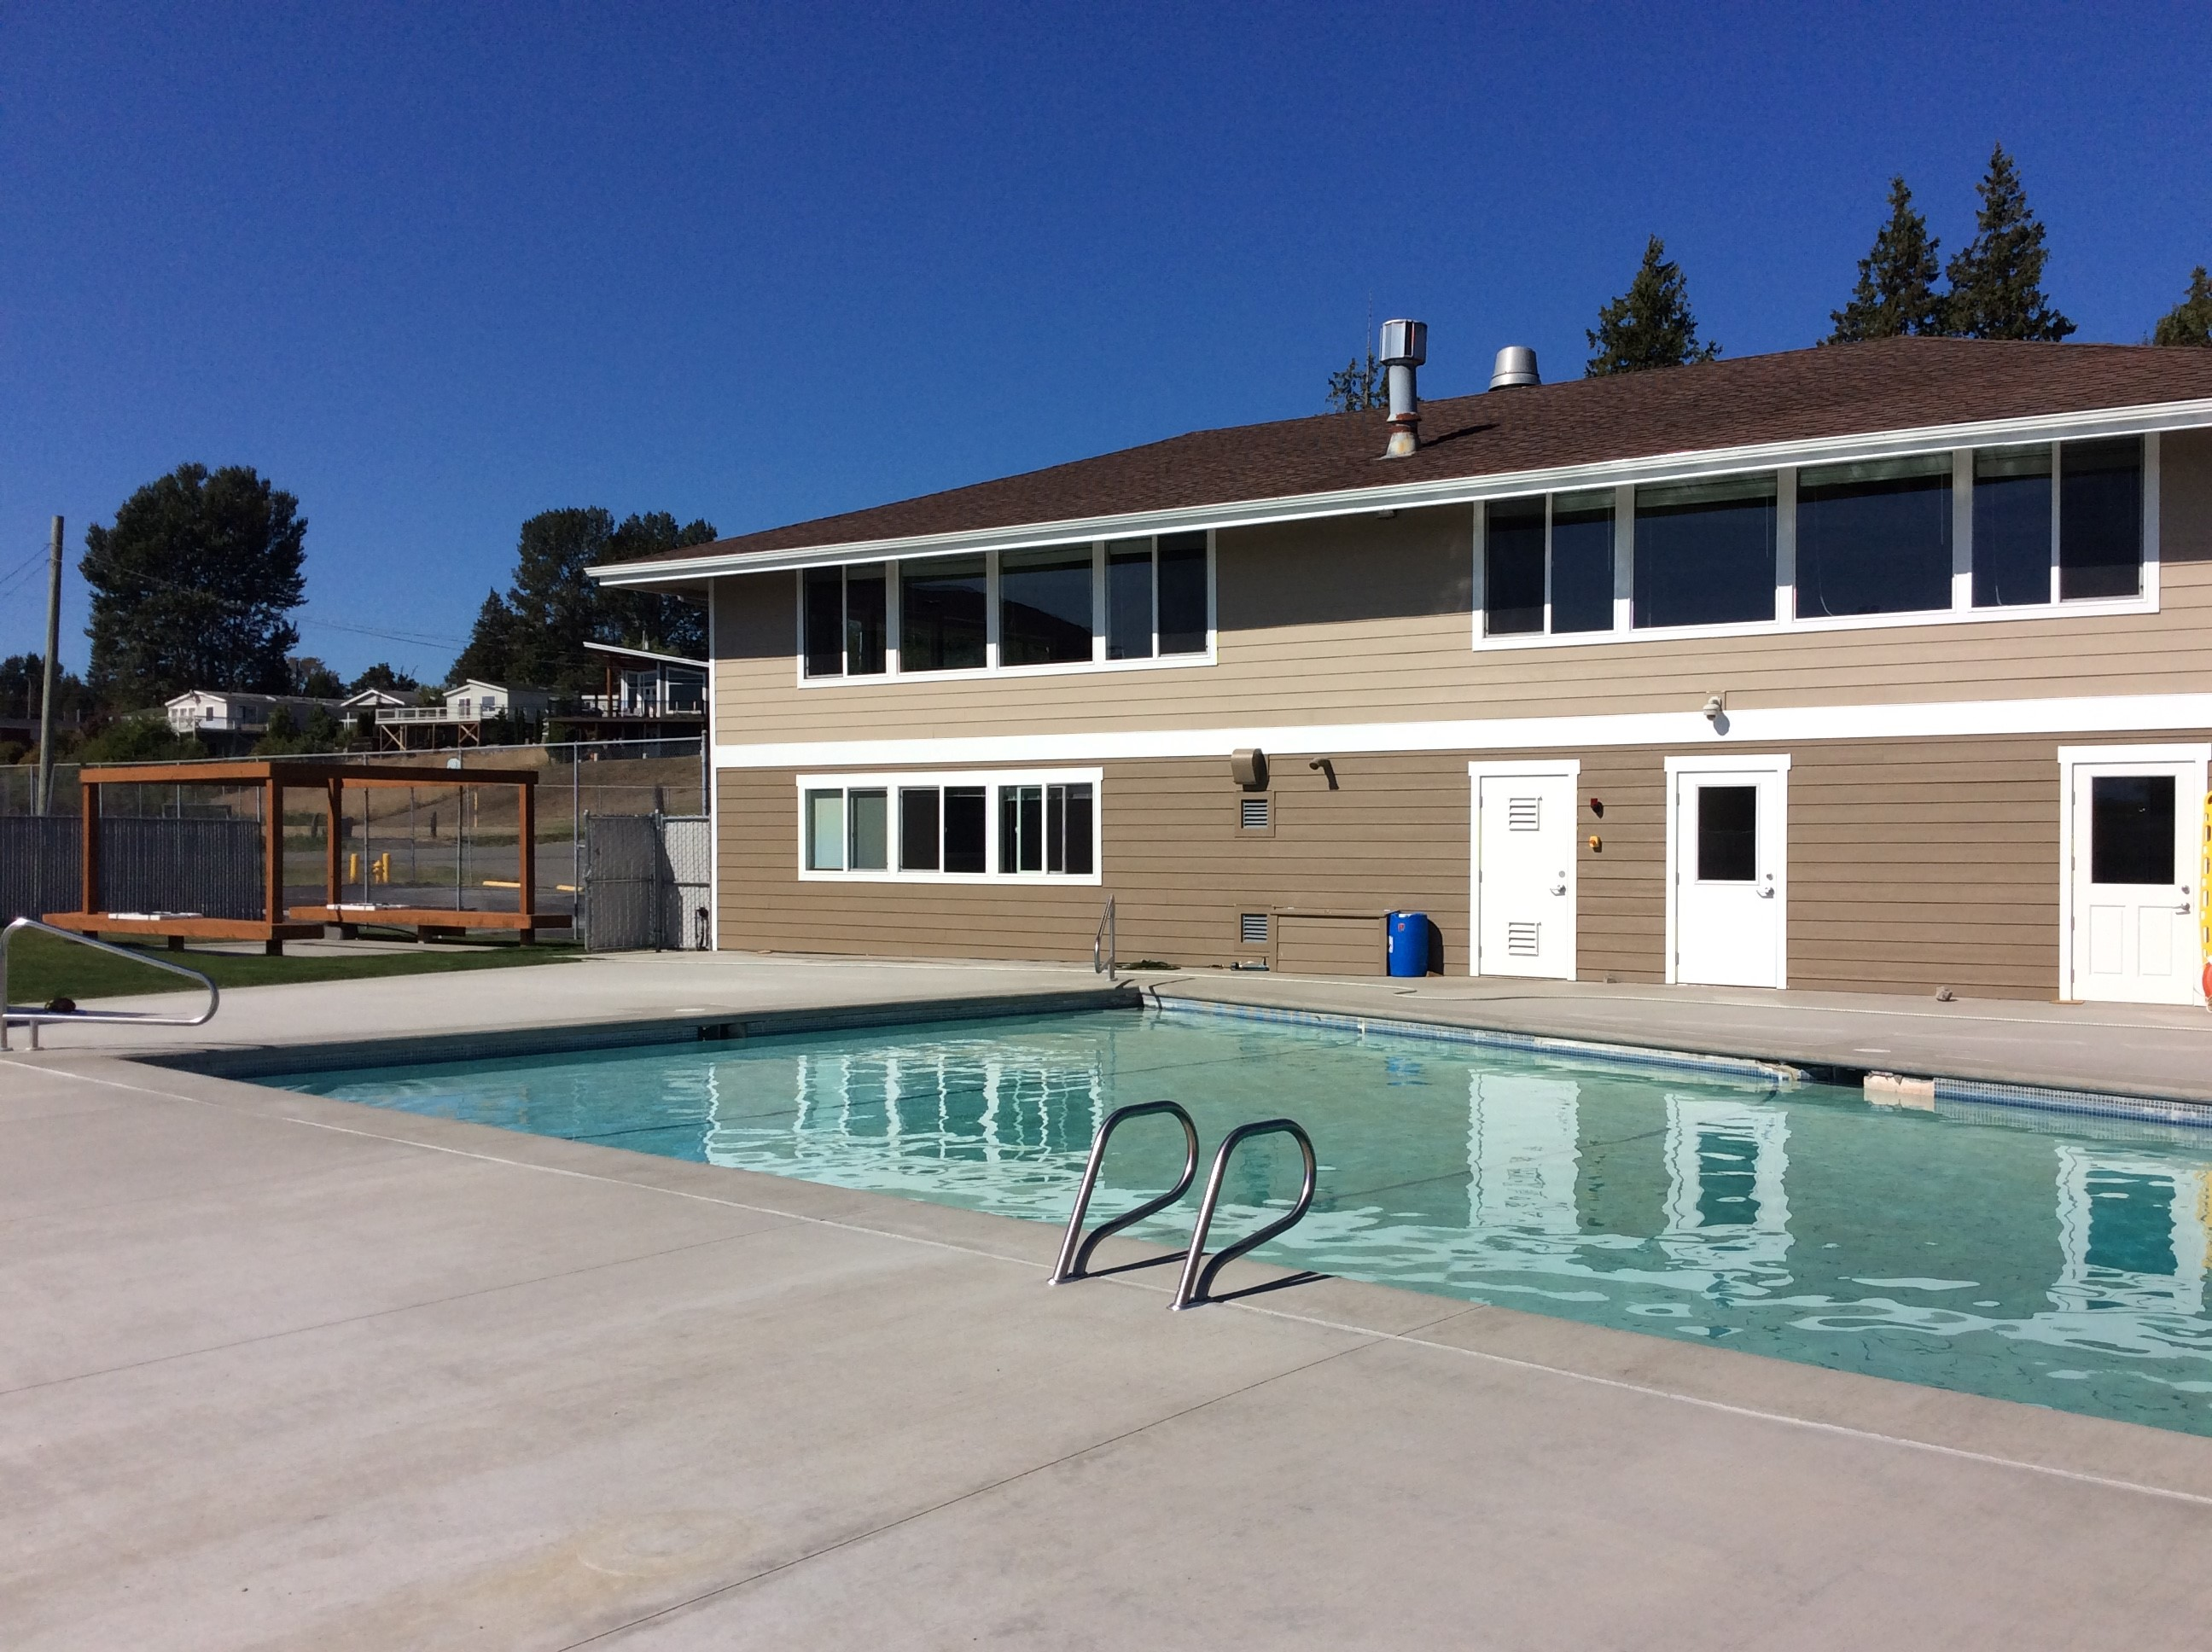 Club house pool sandy point improvement company - Does fire department fill swimming pools ...